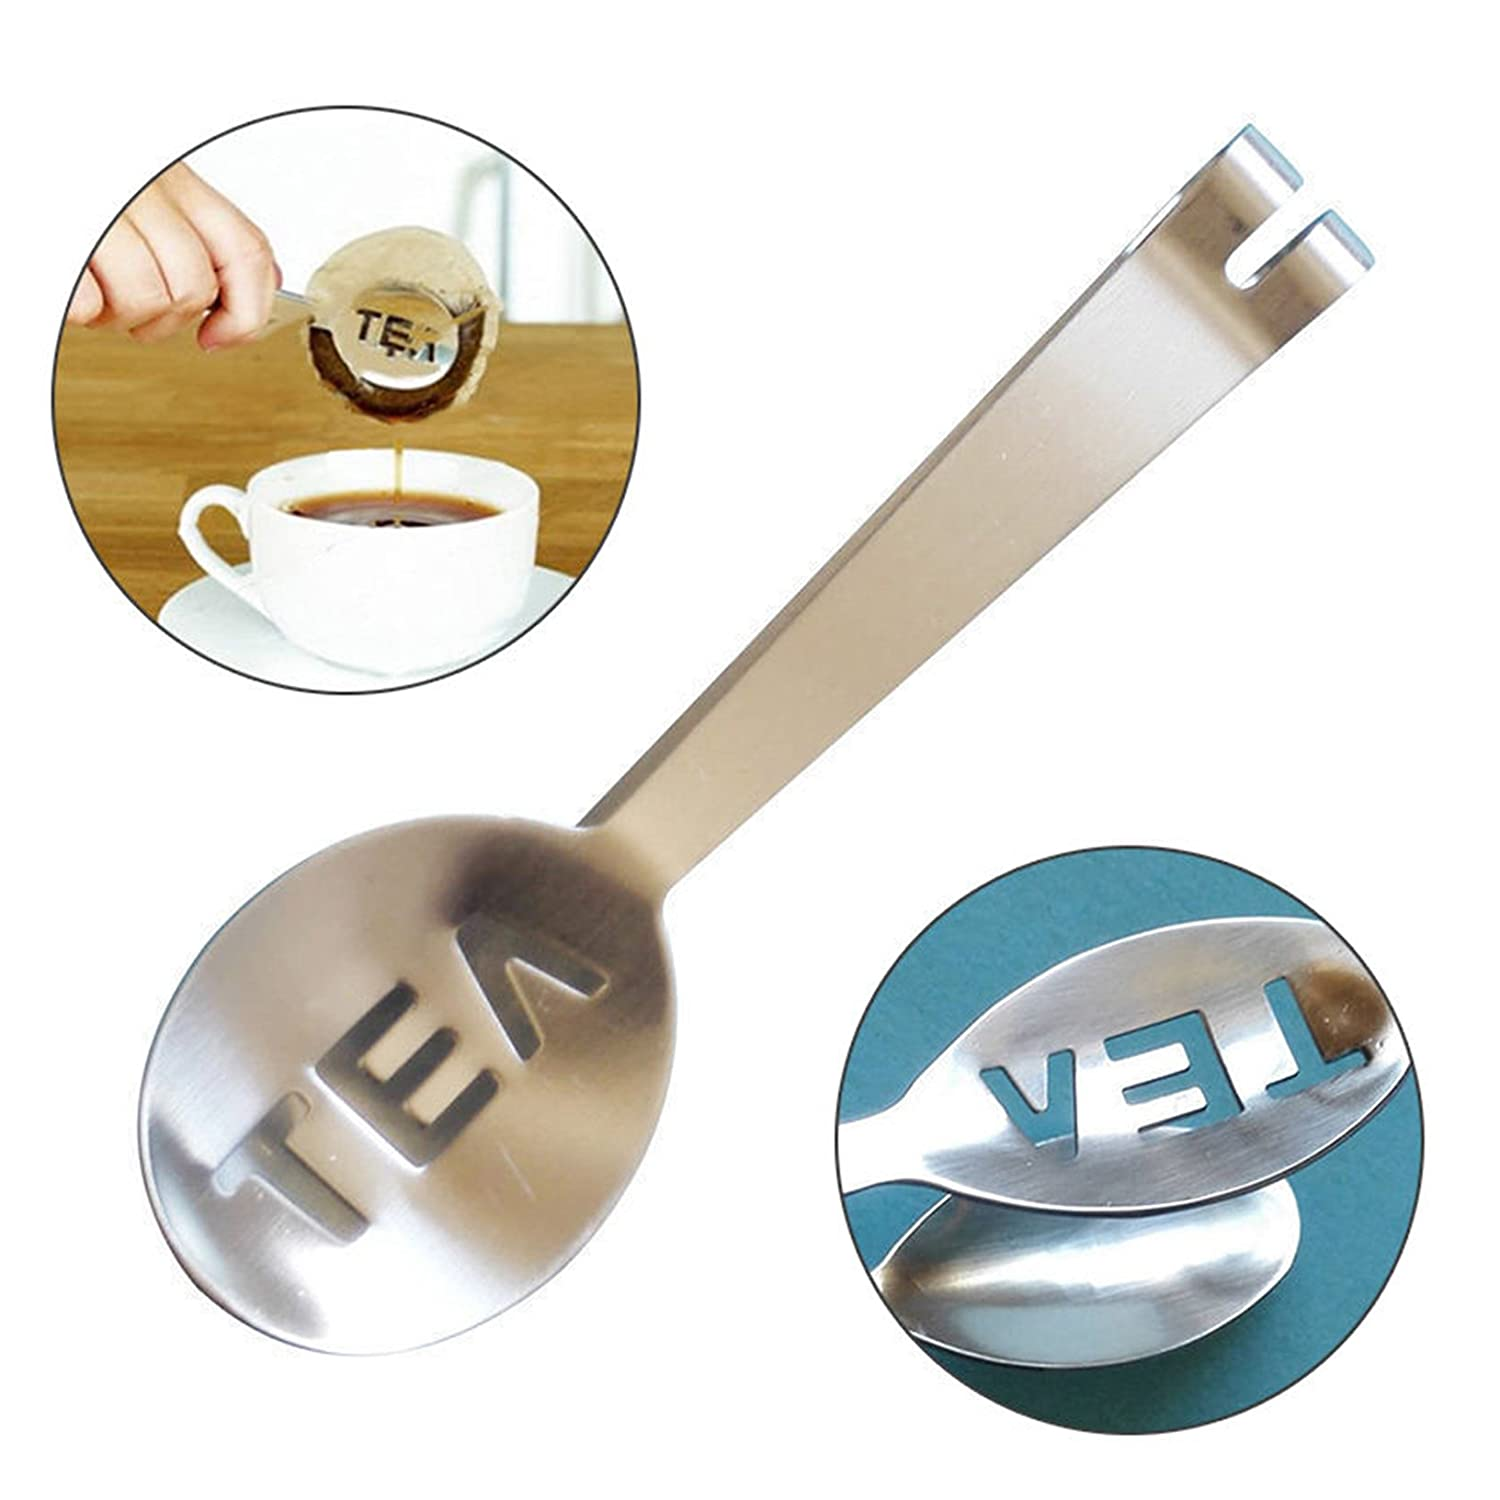 Toyofmine 1pcs Stainless Steel Teabag Tongs Tea Bag Squeezer Herb Grip Holder For Home Kitchen